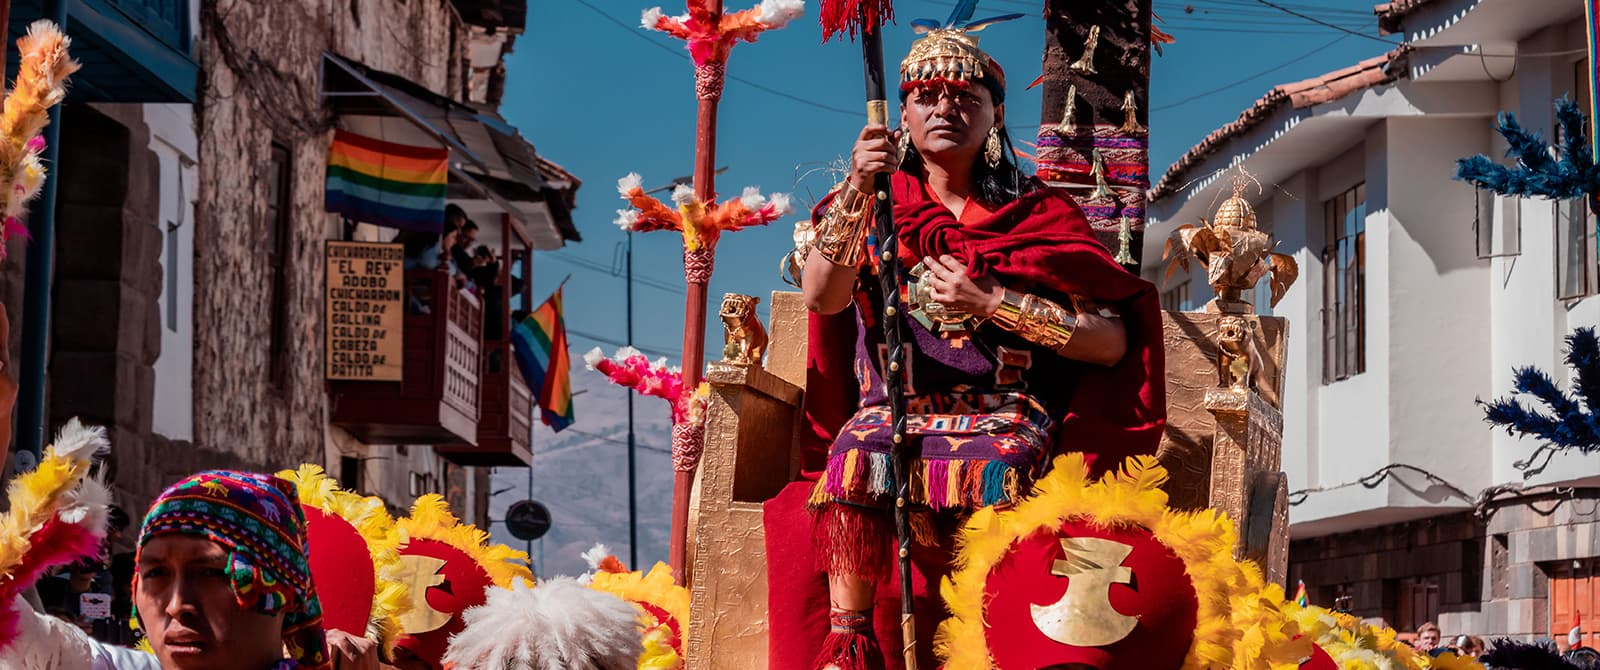 cusco intirraymi staging